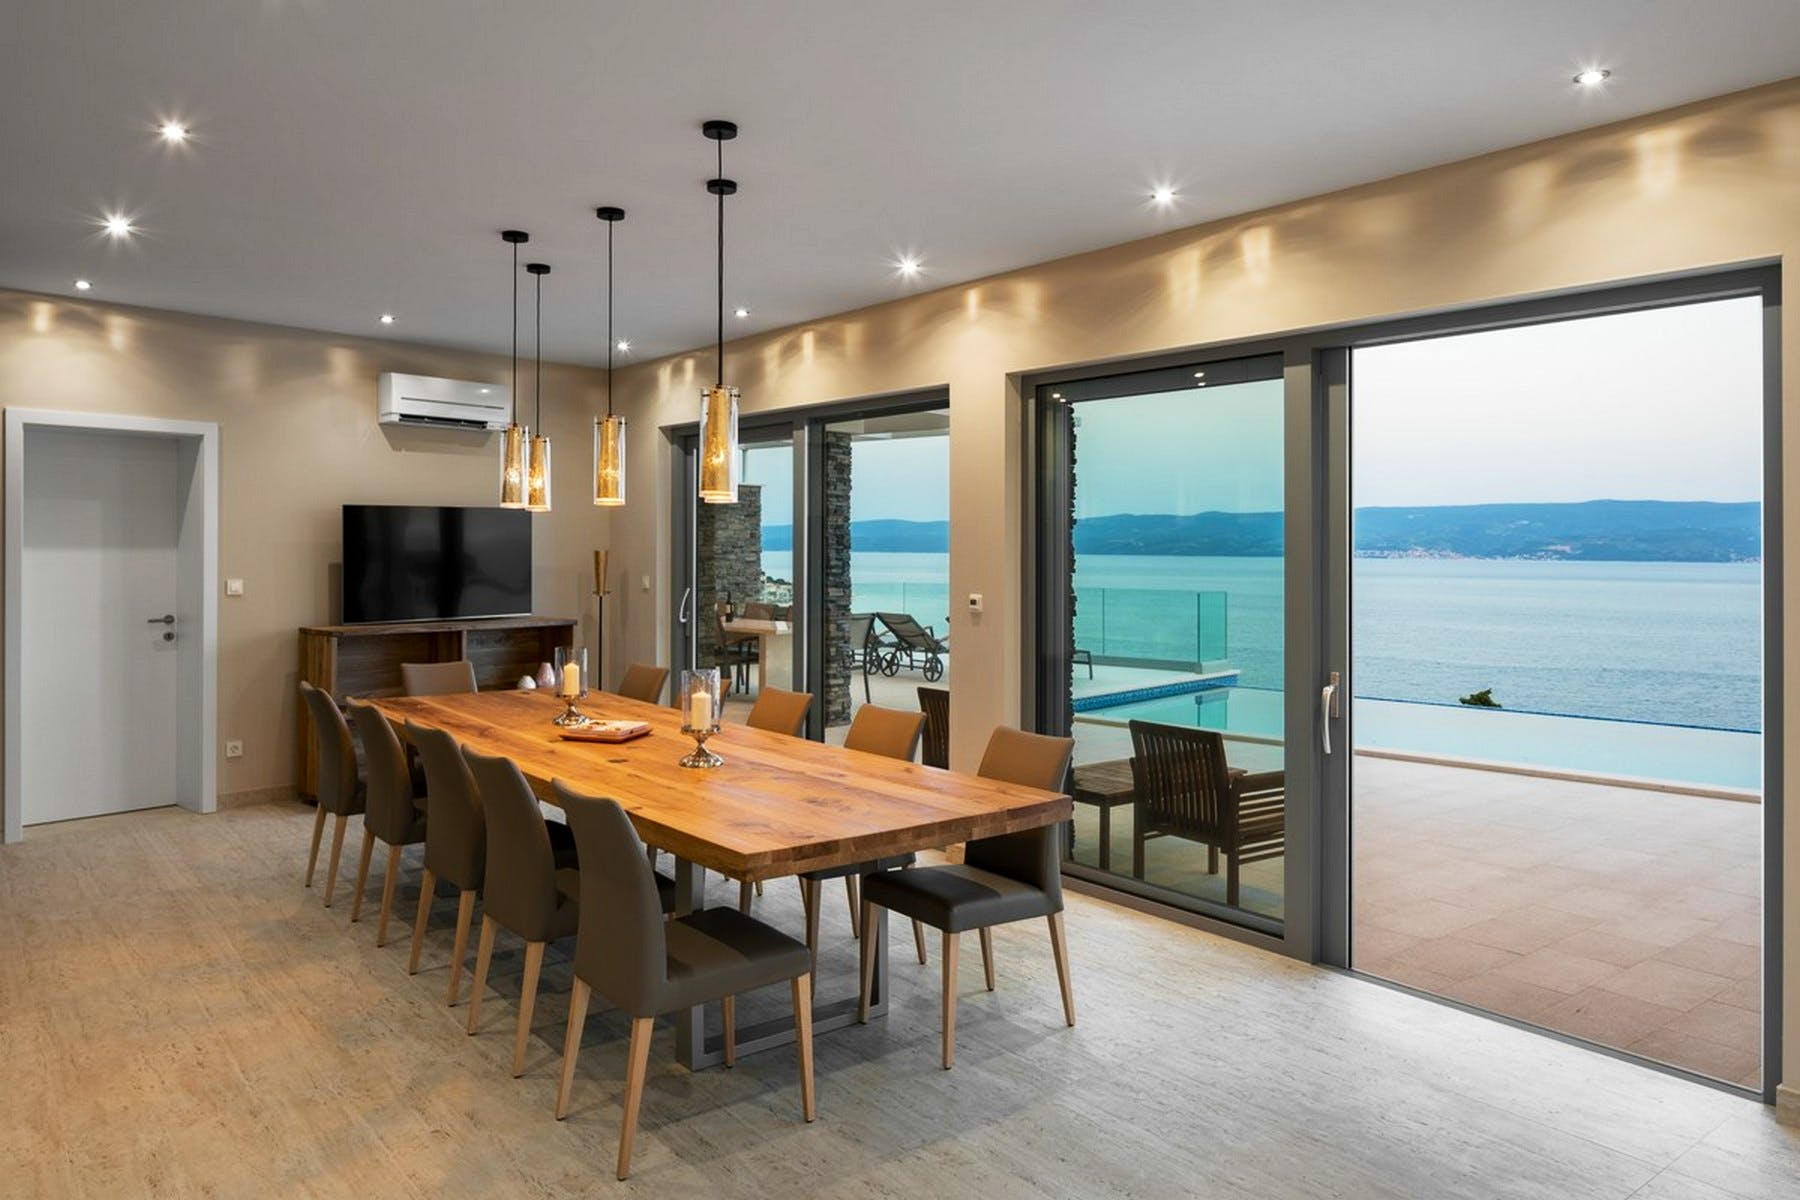 Dining room with a sea view